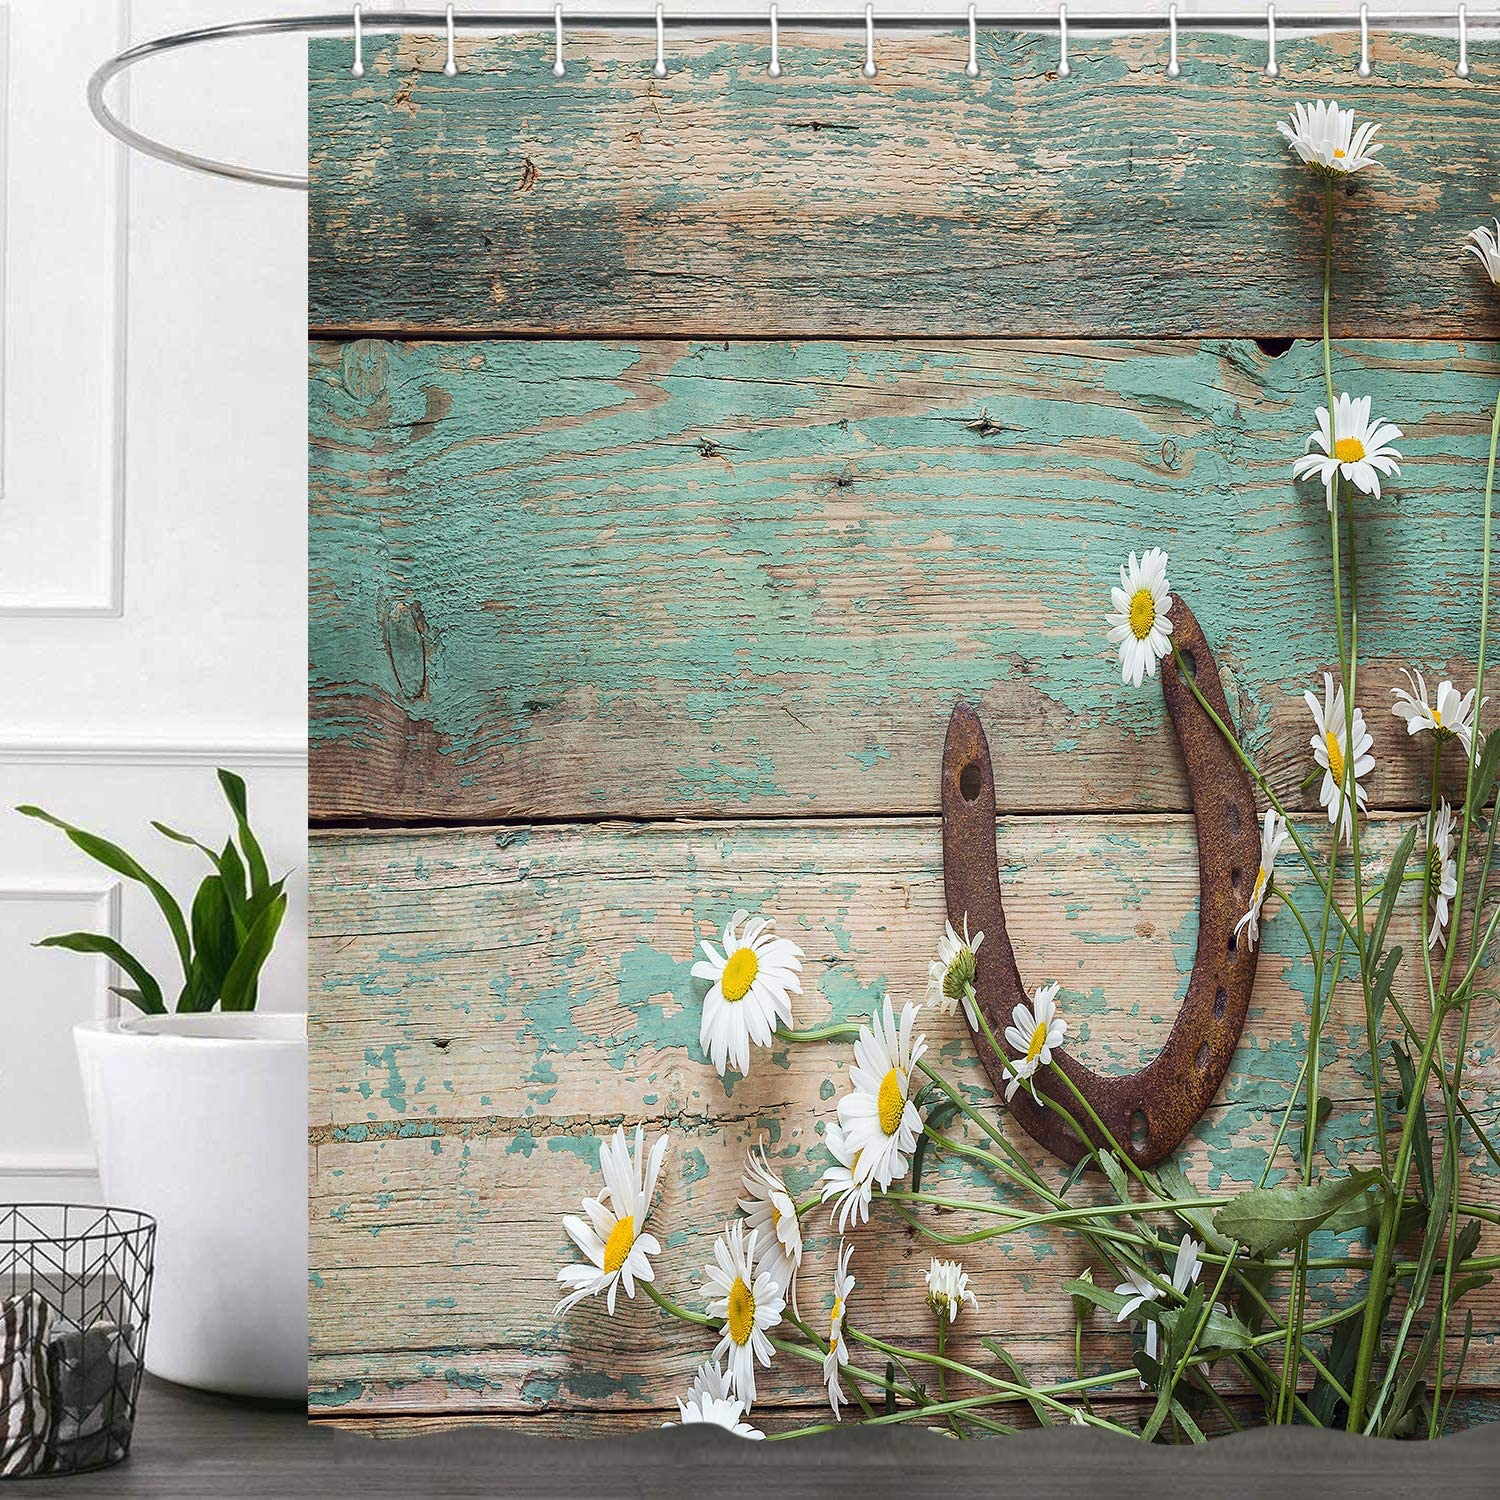 Western Rustic Shower Curtains for Bathroom, Country Horse Shoes Daisy Cowboys Fabric Shower Curtain Set, Horseshoe Barnwood Bathroom Accessories Decor, Hooks Included 72X72 Inches